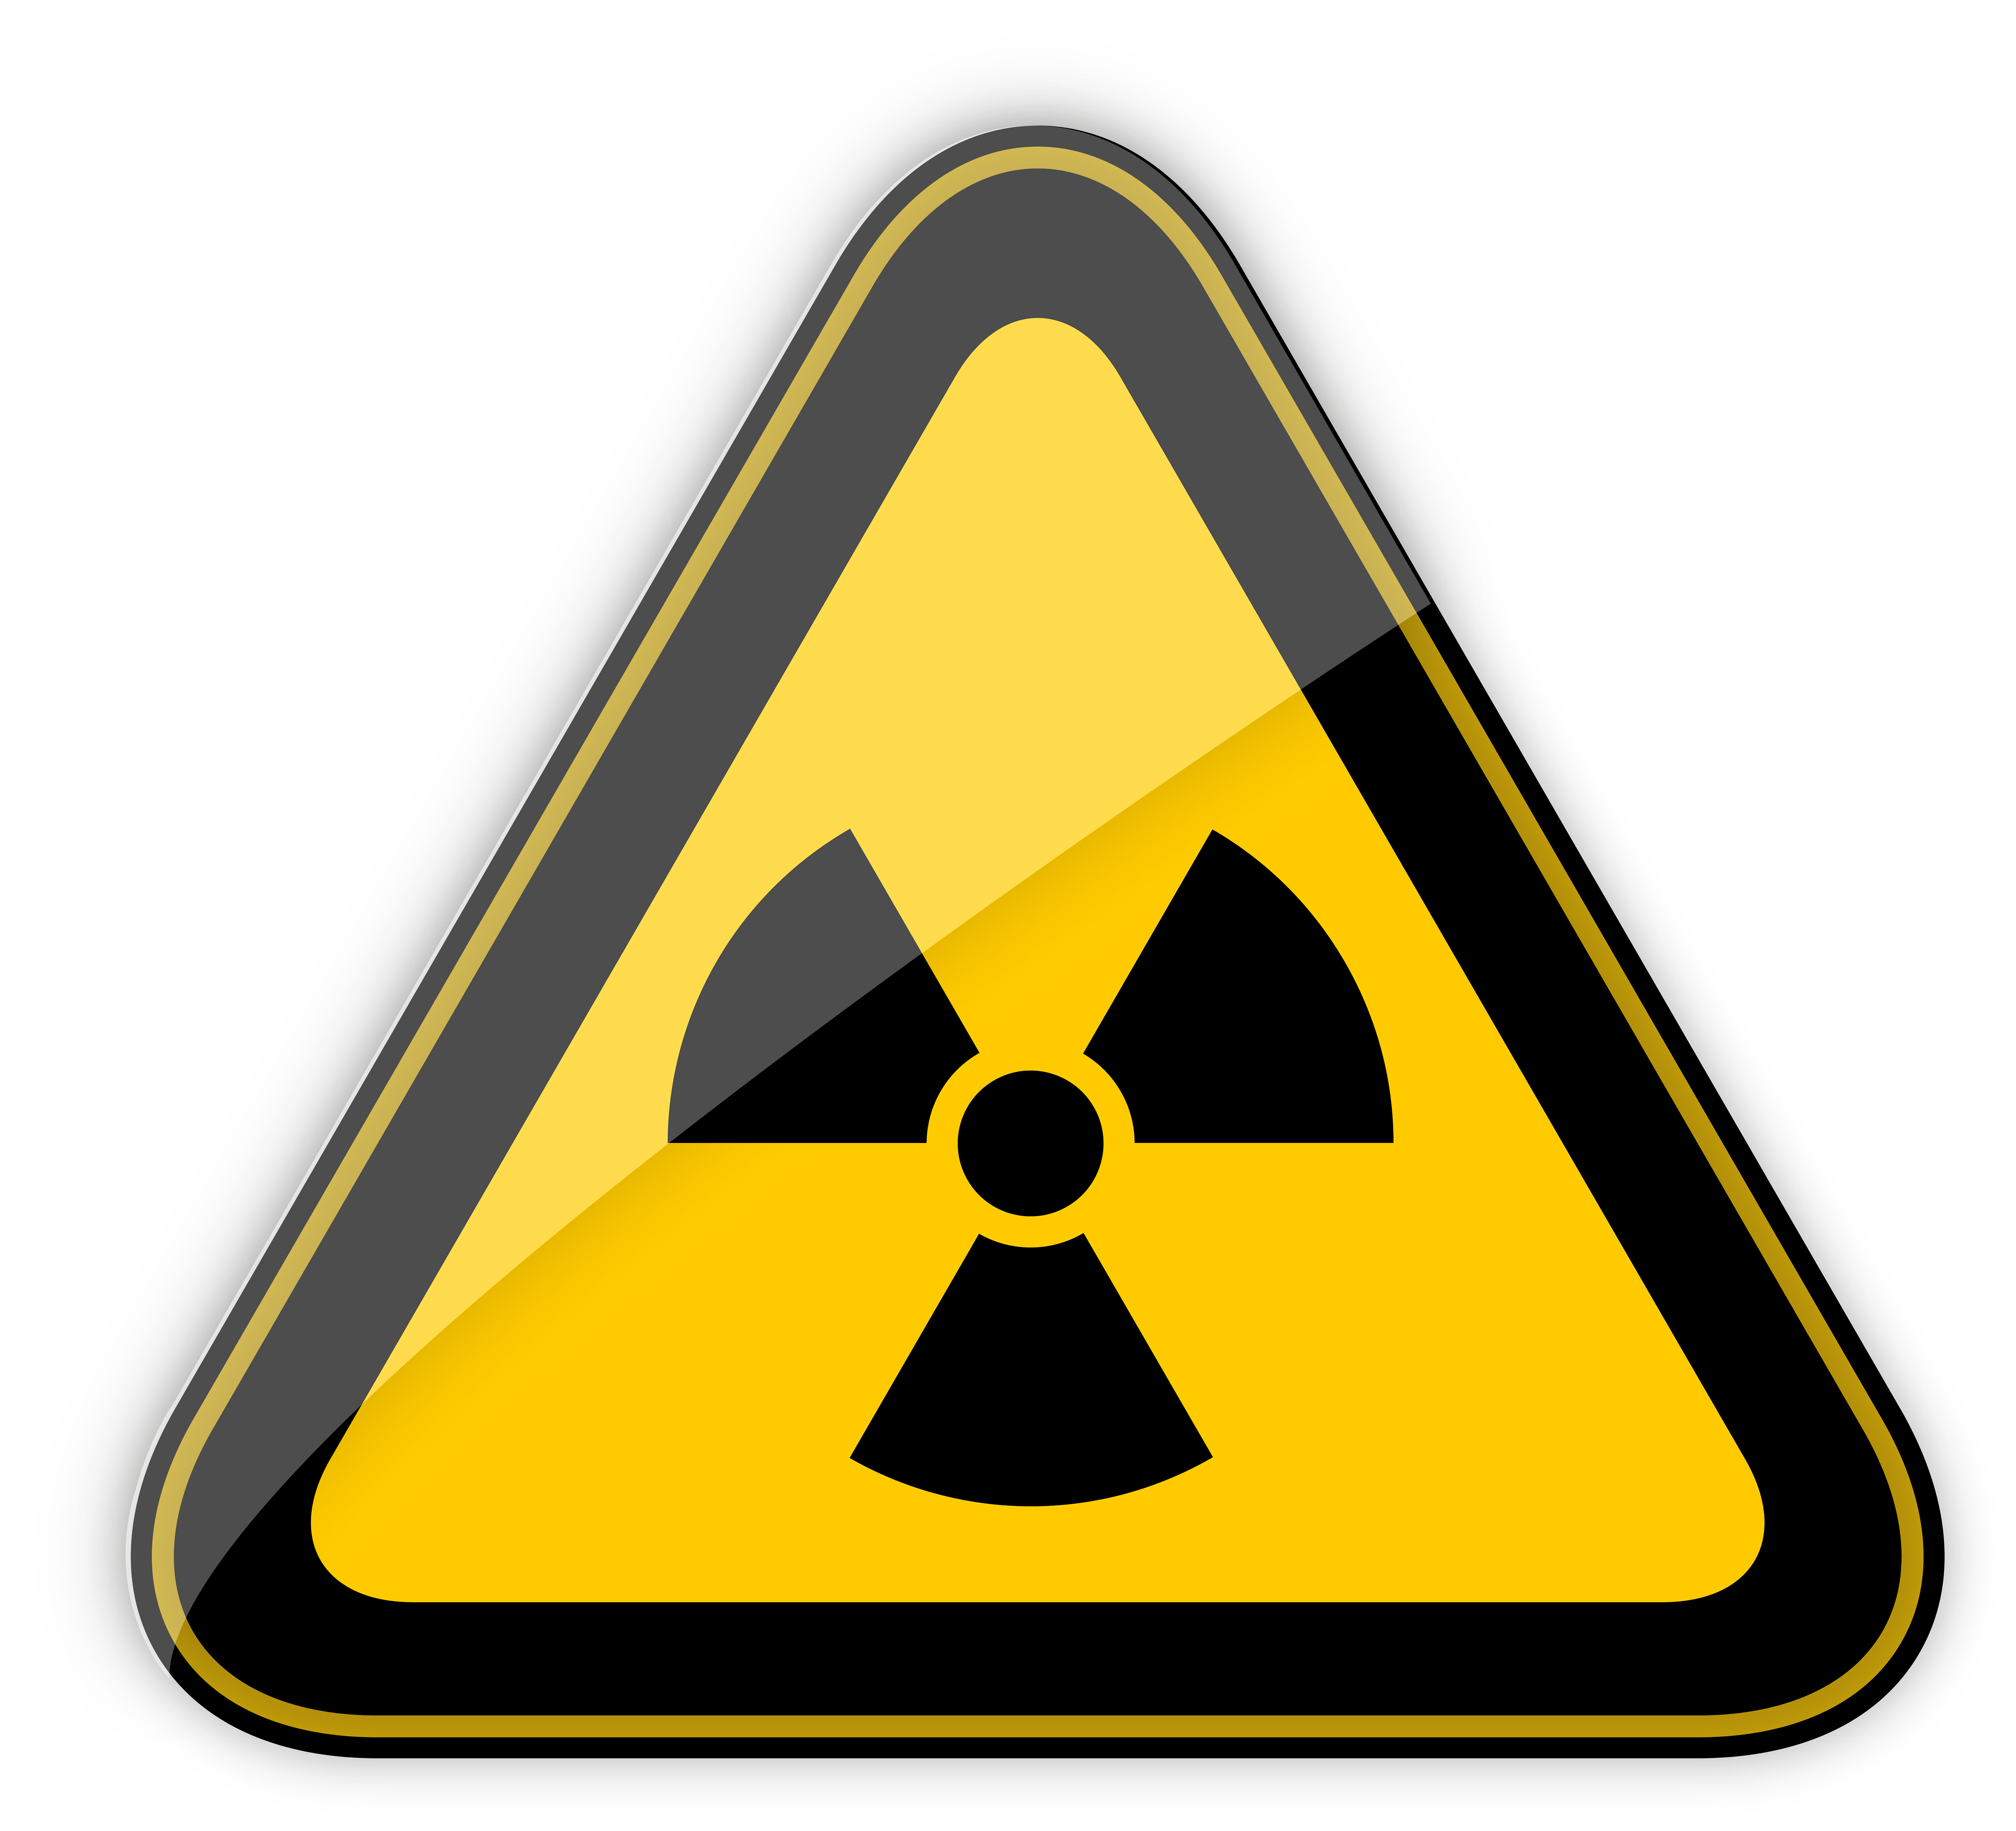 Sun radiation clipart picture free download Radiation Hazard Warning Sign PNG Clipart - Best WEB Clipart picture free download